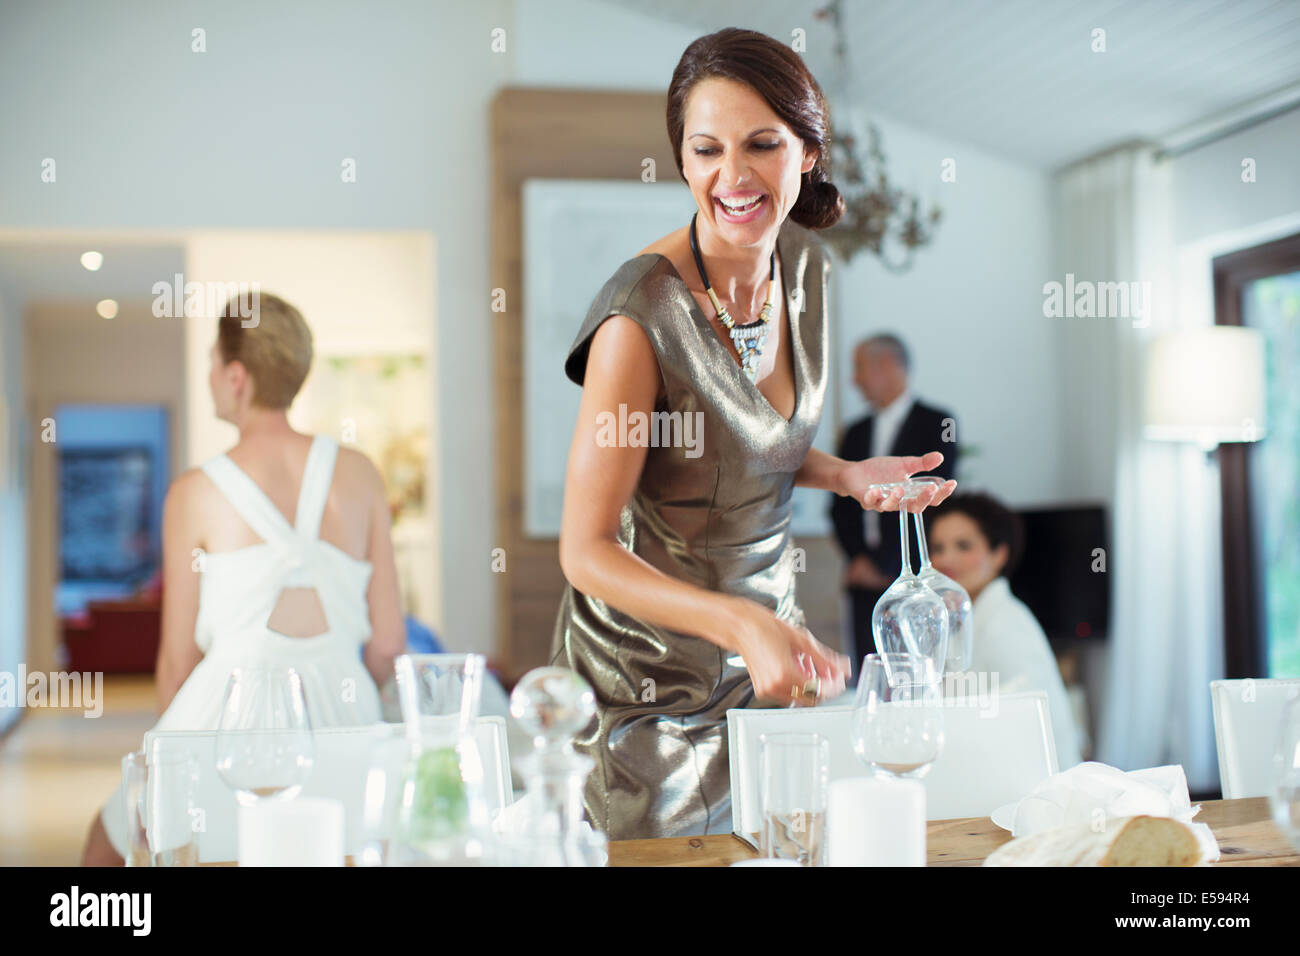 Woman setting table for party Stock Photo